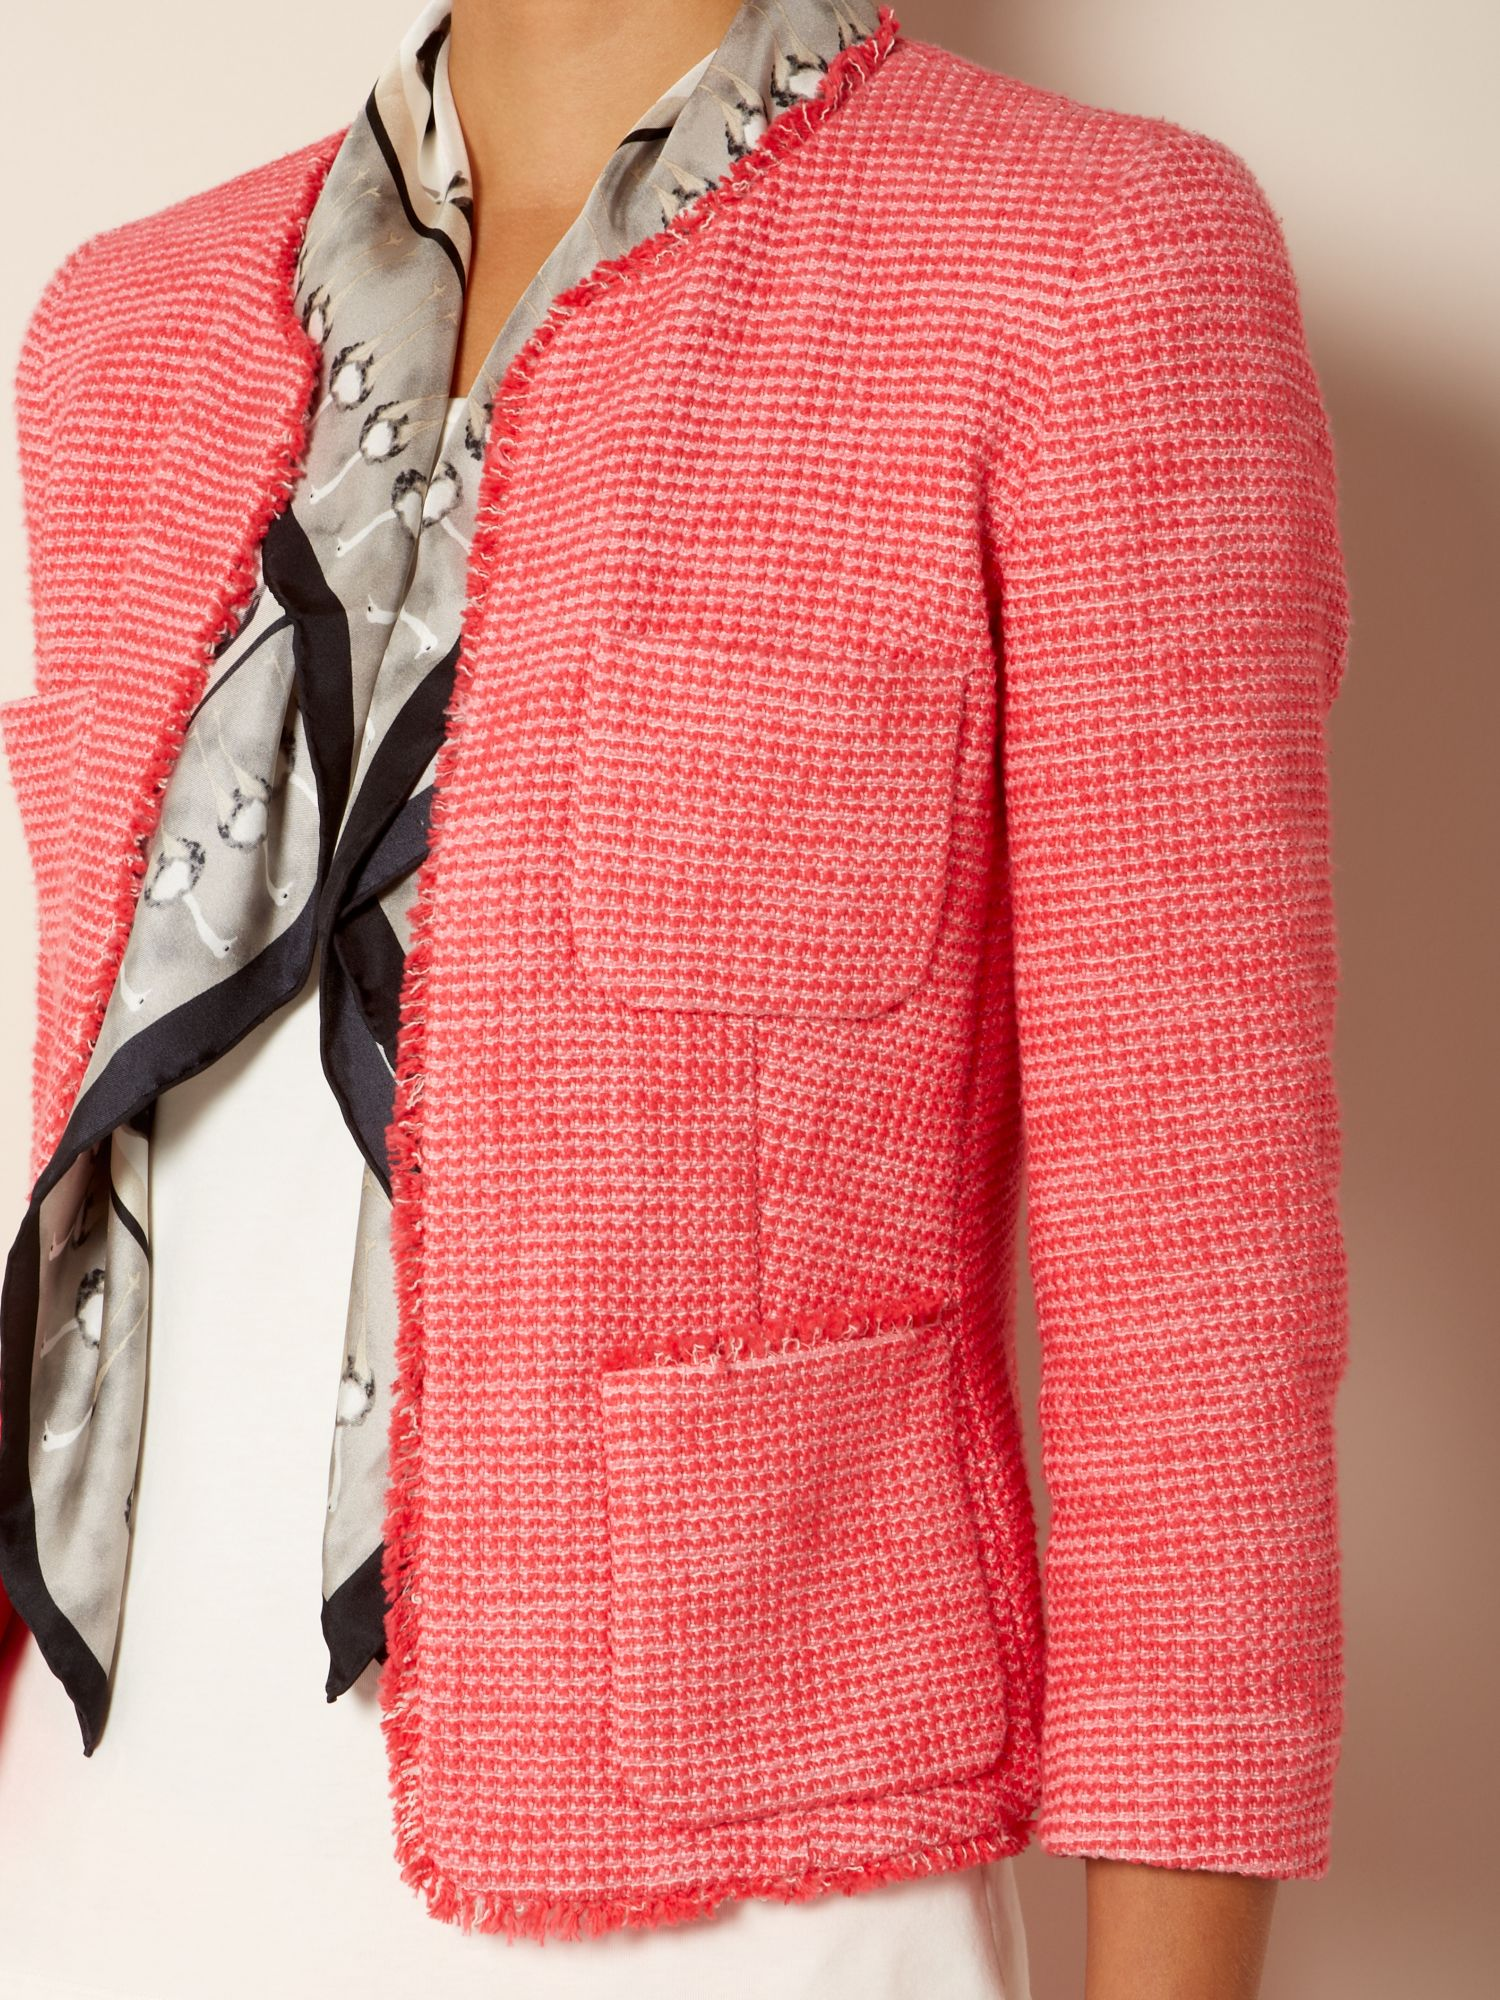 Lyst - Weekend by maxmara Mattino Frayed Boucle Jacket in Pink